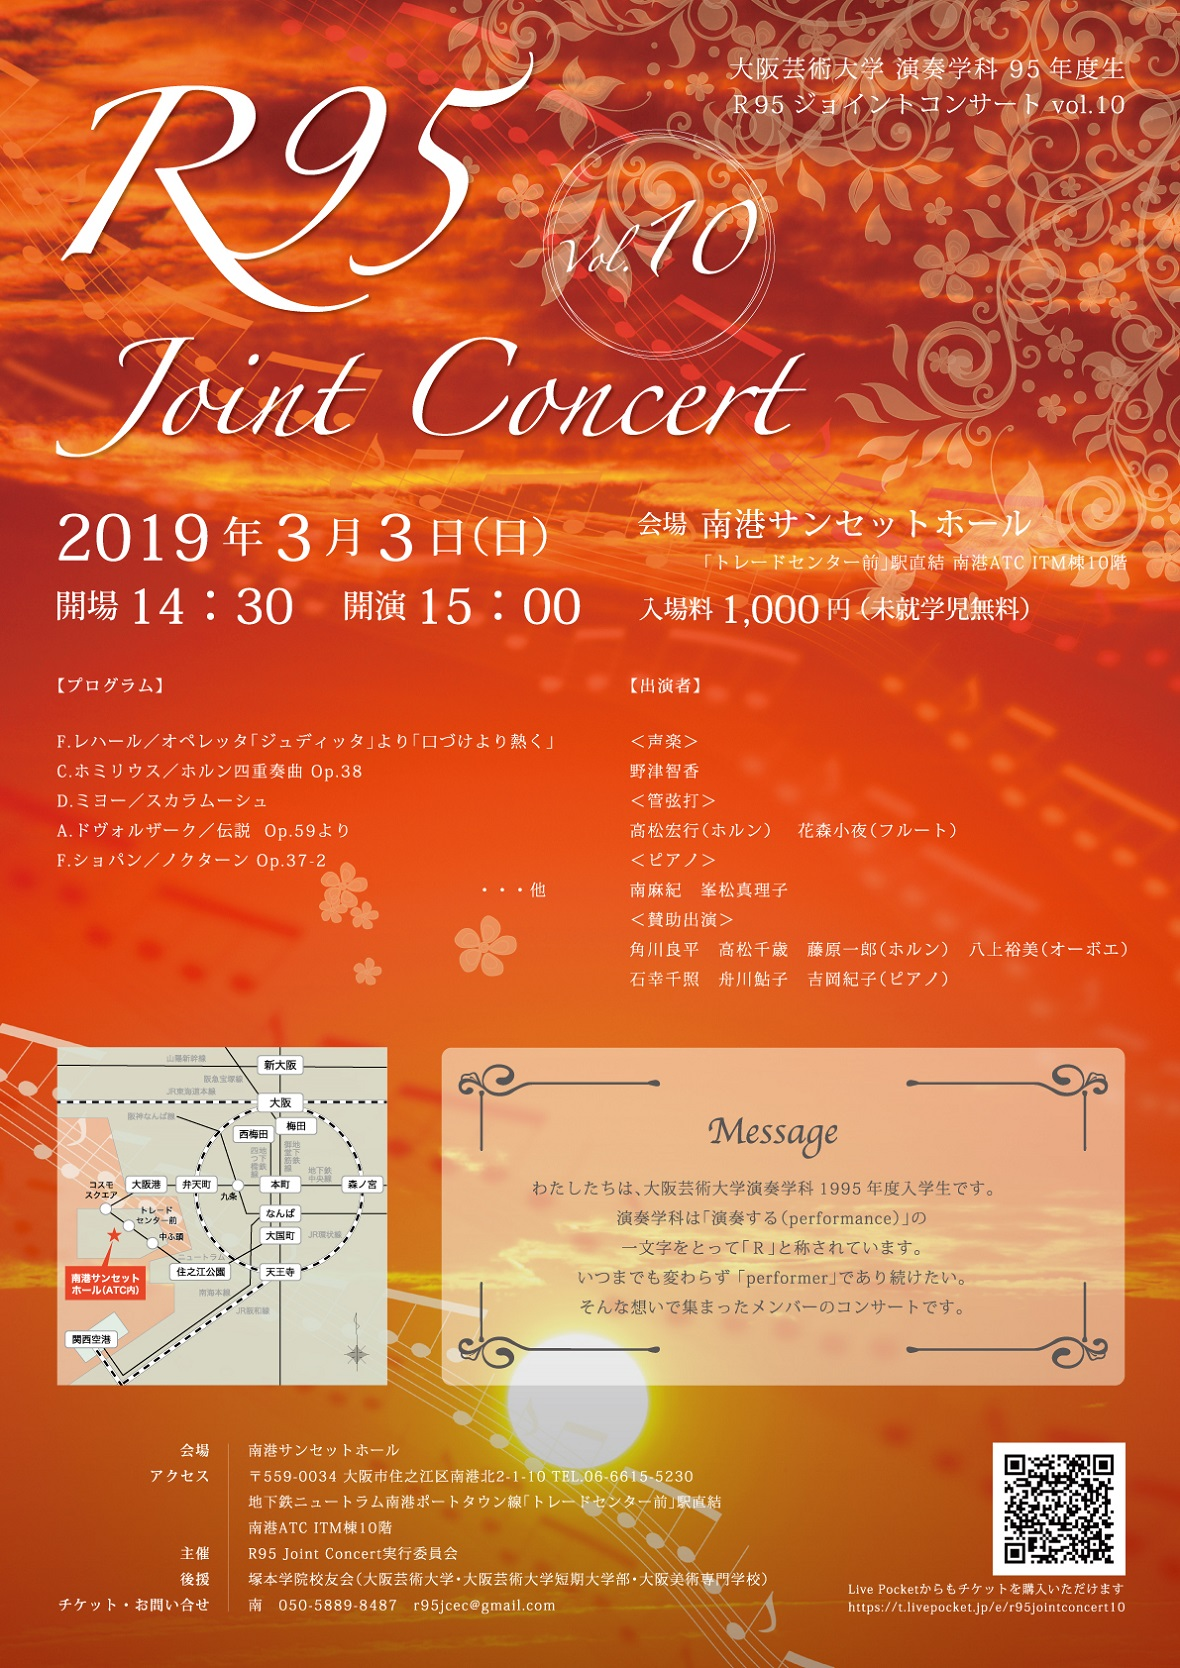 R95 Joint Concert Vol.10